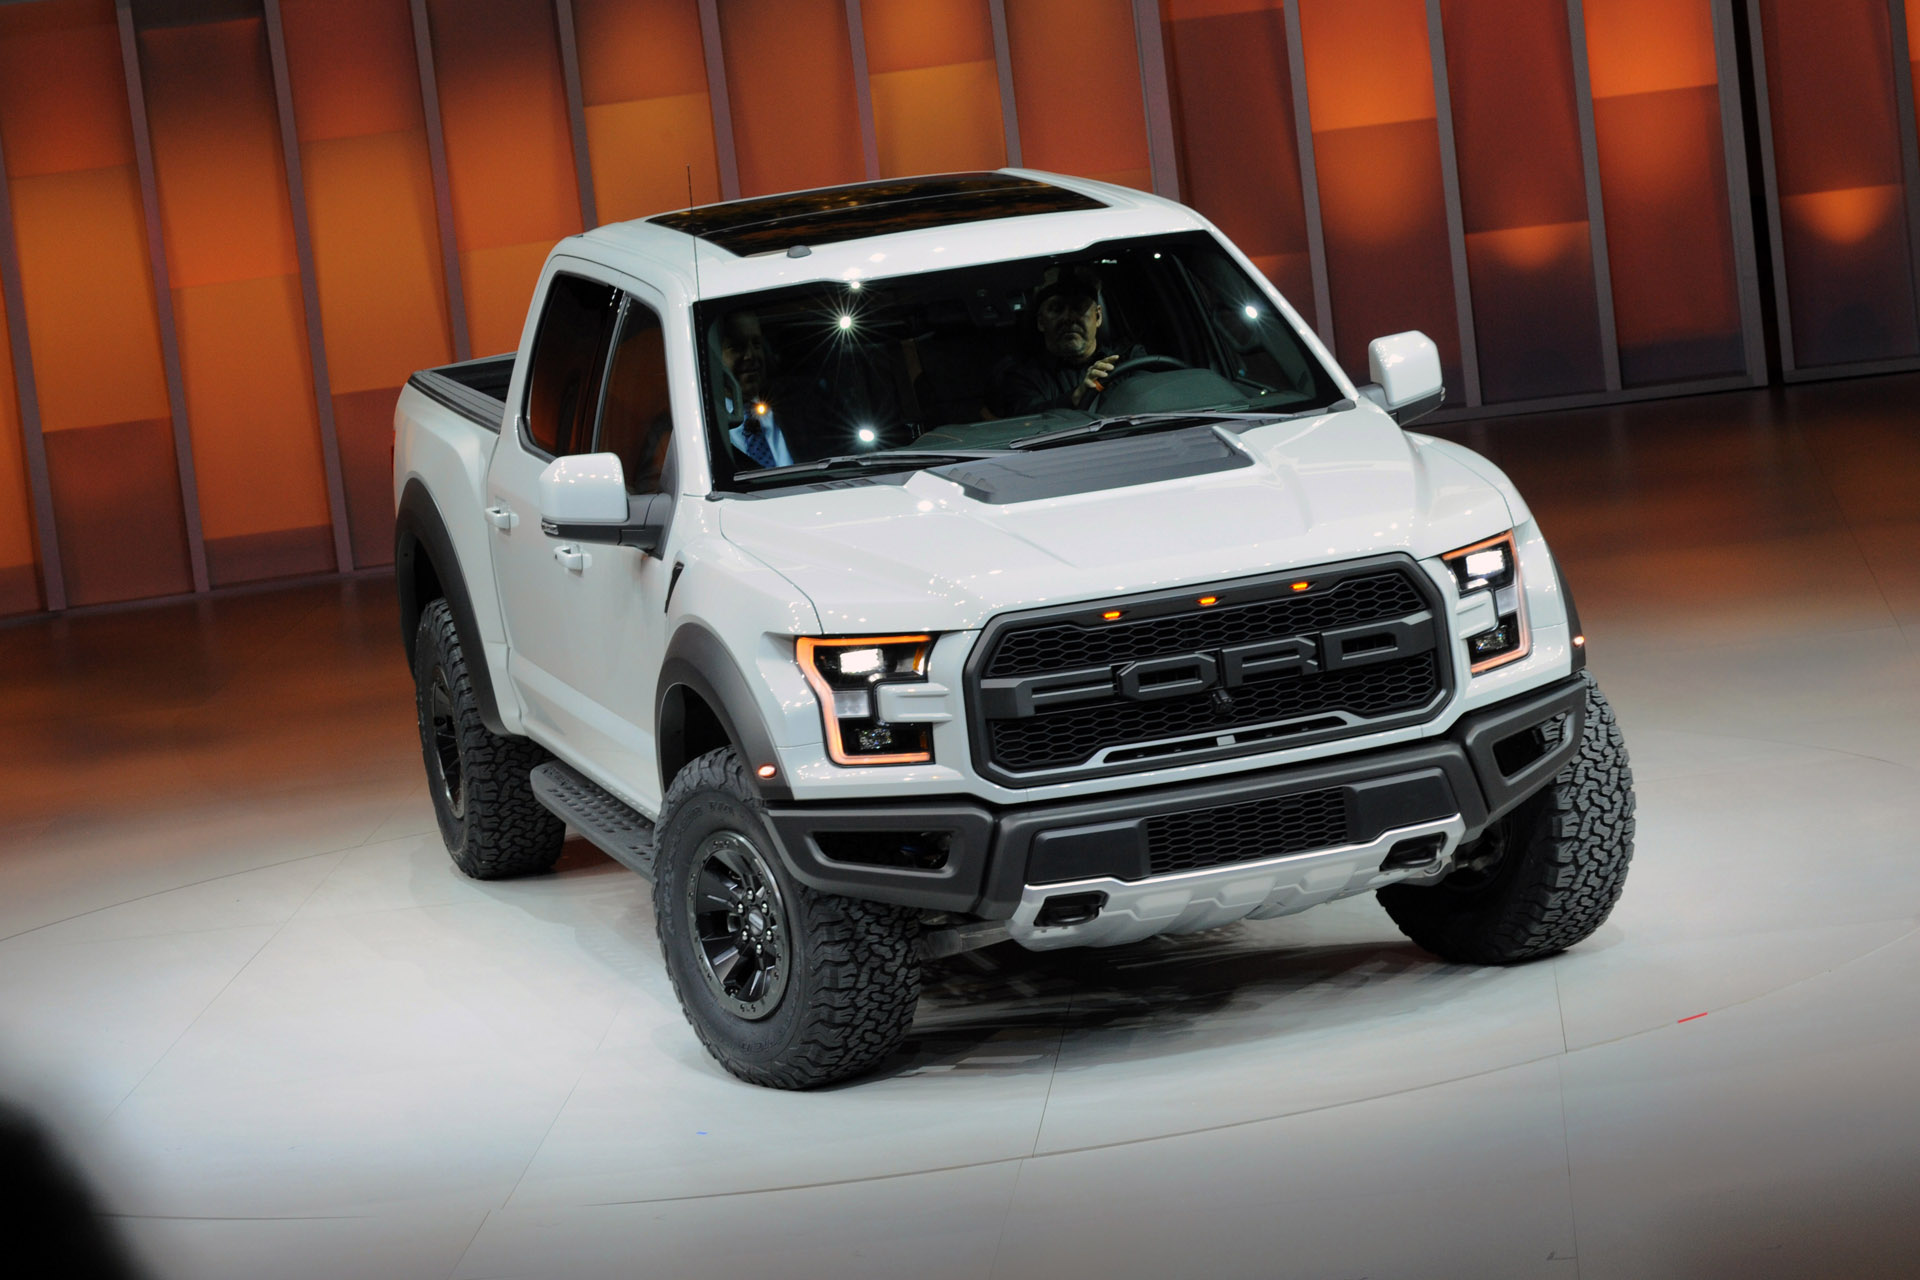 Detroit, January 11, 2016 -- The all-new F-150 Raptor SuperCrew at the North American International Auto Show. With four full-size doors, F-150 Raptor SuperCrew adds room for passengers and gear, expanding choice and versatility in the toughest, smartest, most capable F-150 Raptor ever.